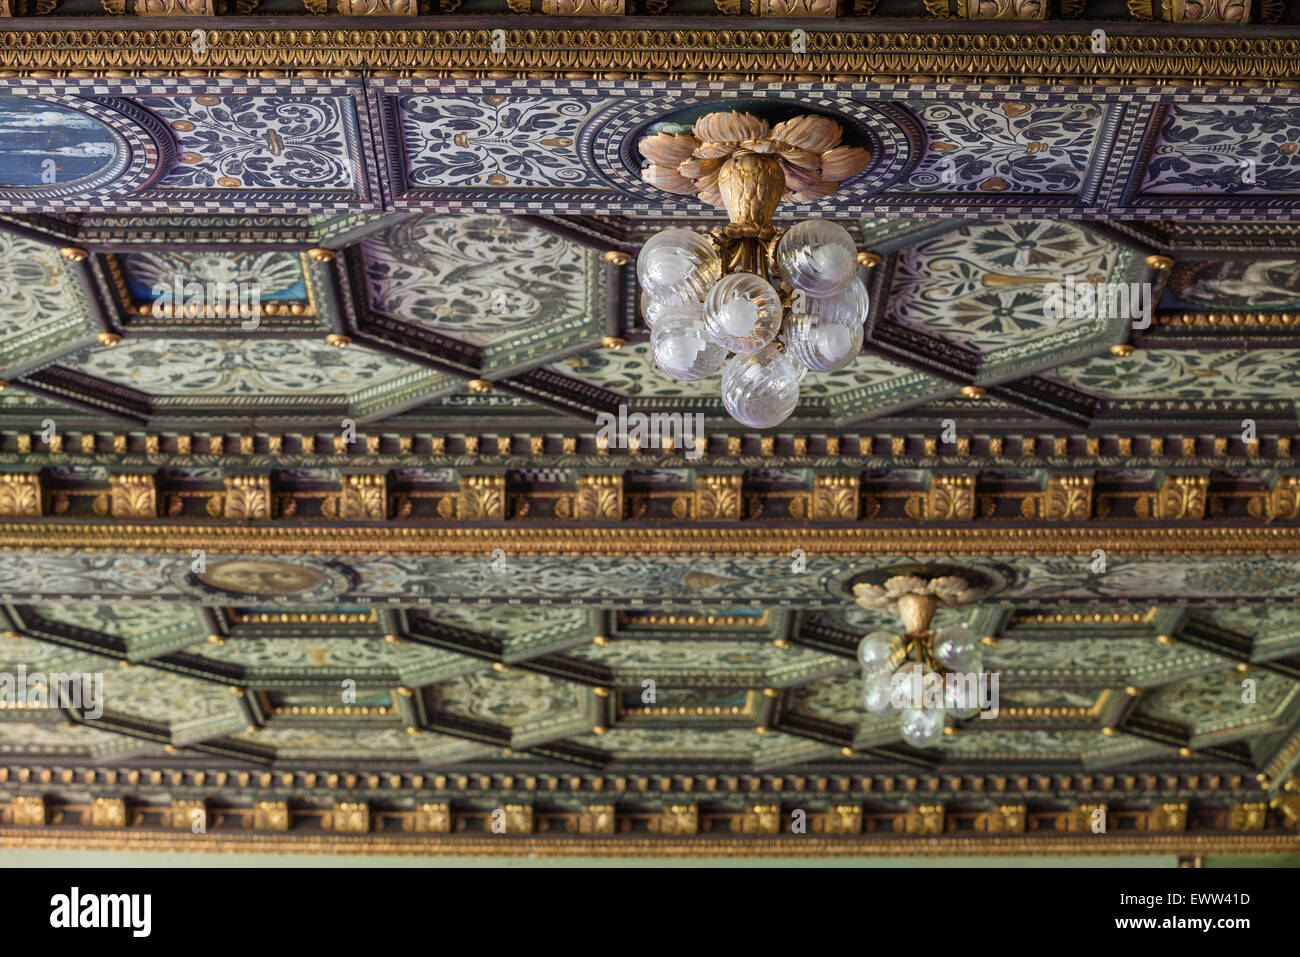 Glass bauble light fitting hung from hand painted gilt stucco coffered ceiling - Stock Image